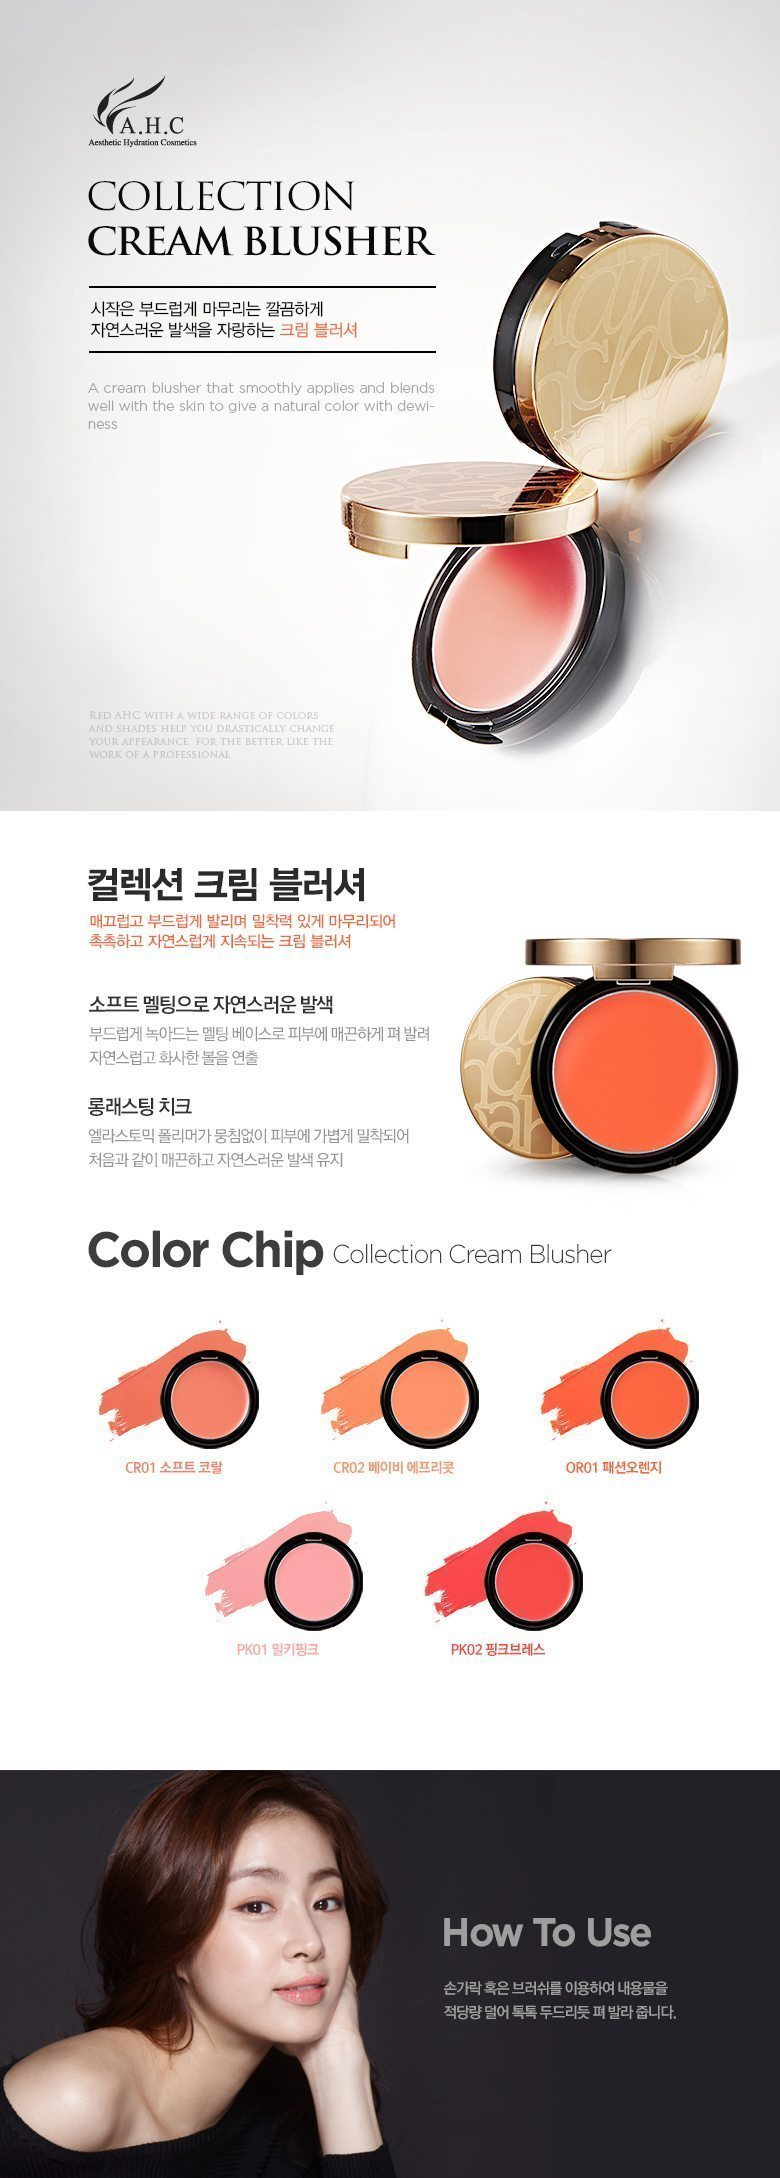 AHC Collection Cream Blusher 15g malaysia singapore indonesia